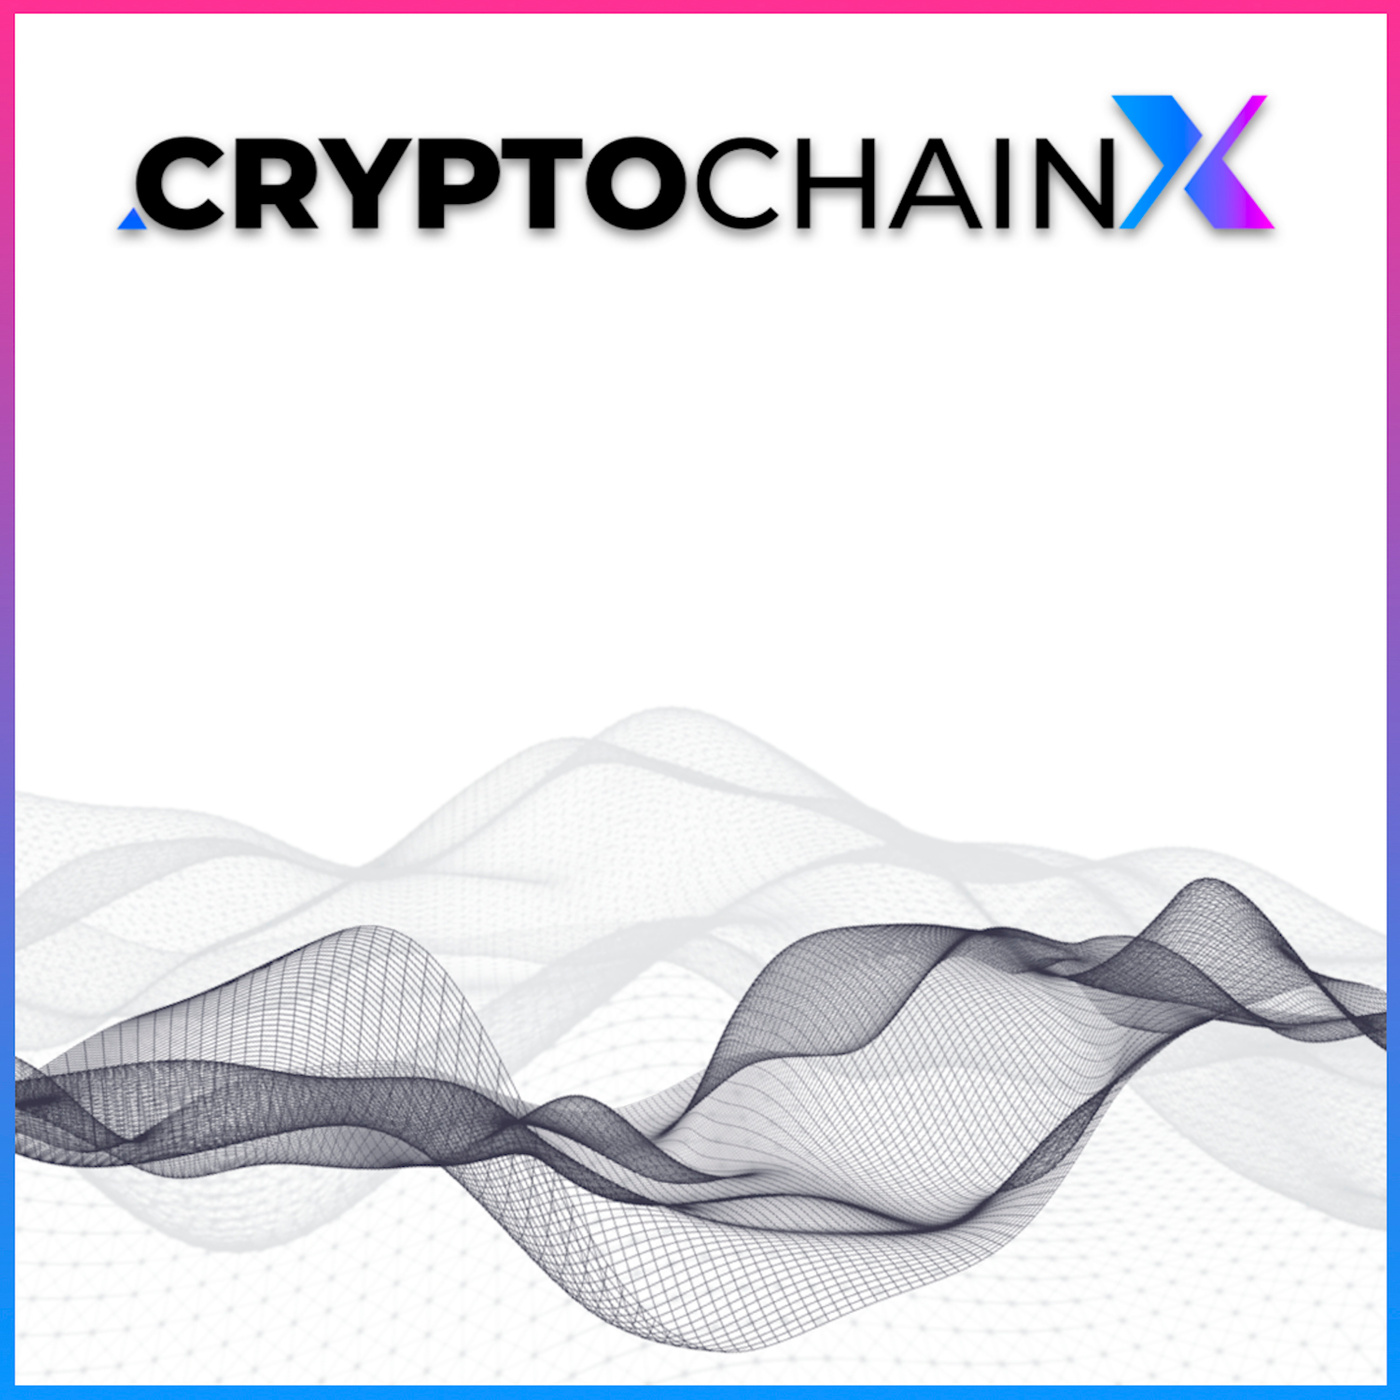 CCX012 - NEO 101 - Blockchain Ecosystem and Cryptocurrency - What, Why and How